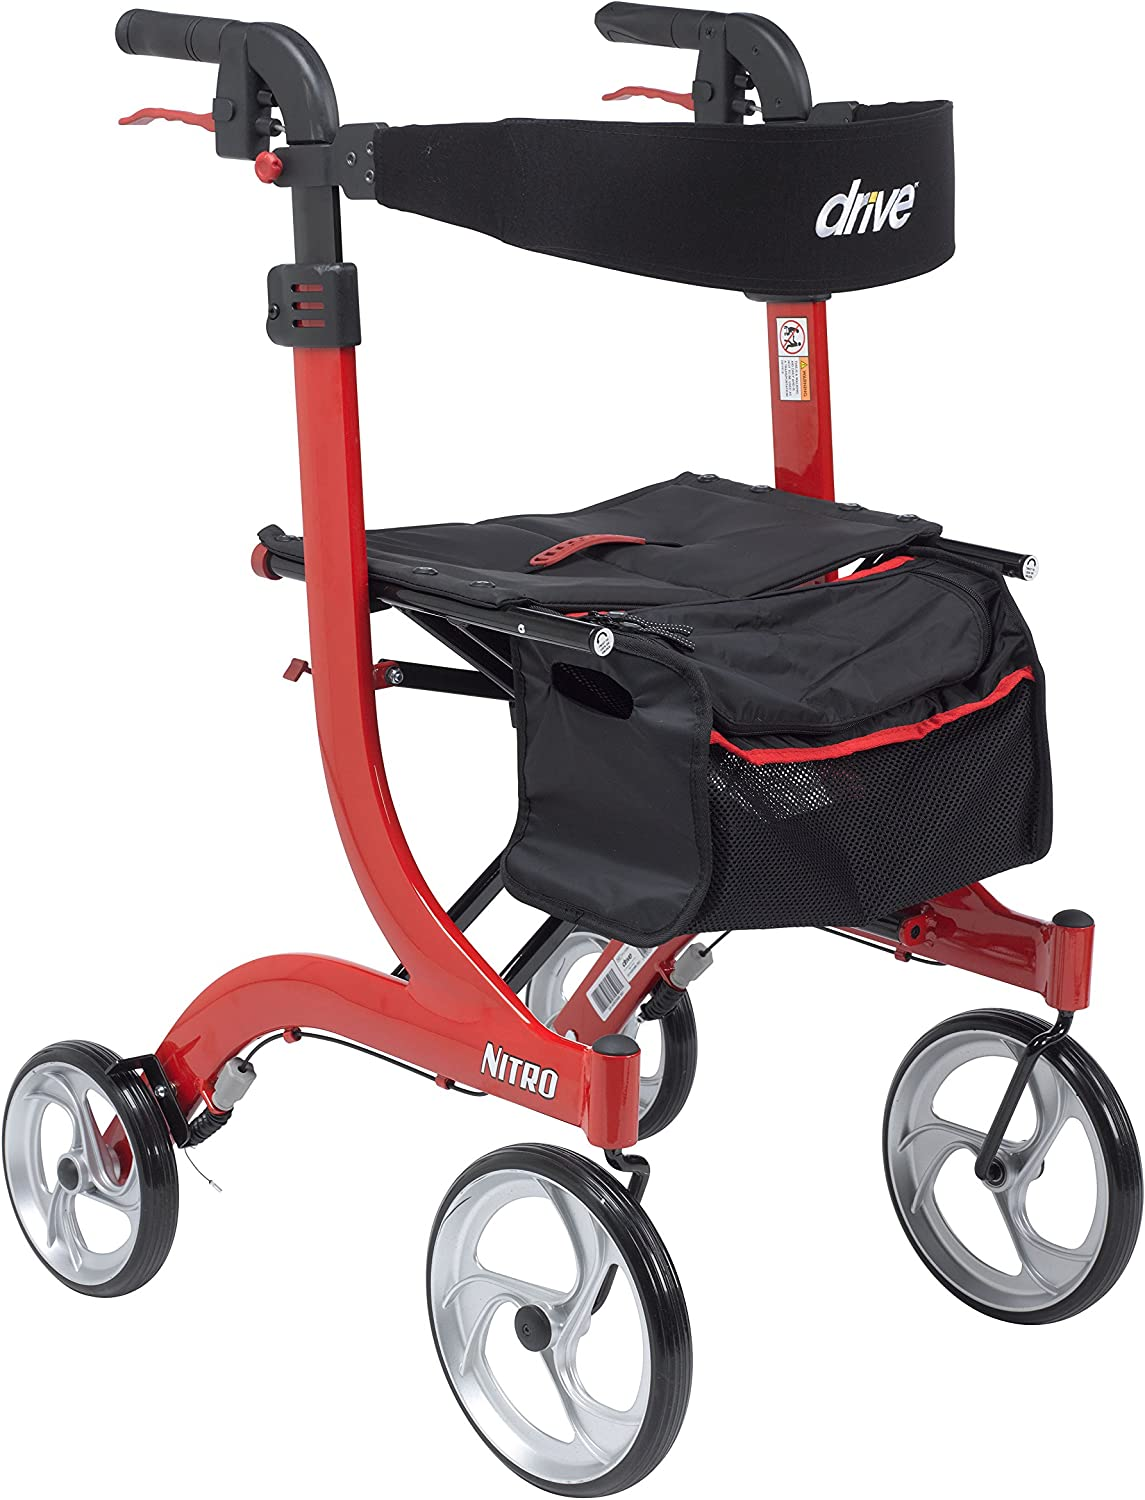 Drive Medical RTL10266-T Nitro Euro Style Walker Rollator, Tall, Red 81zqIGs9xxLSL1500_